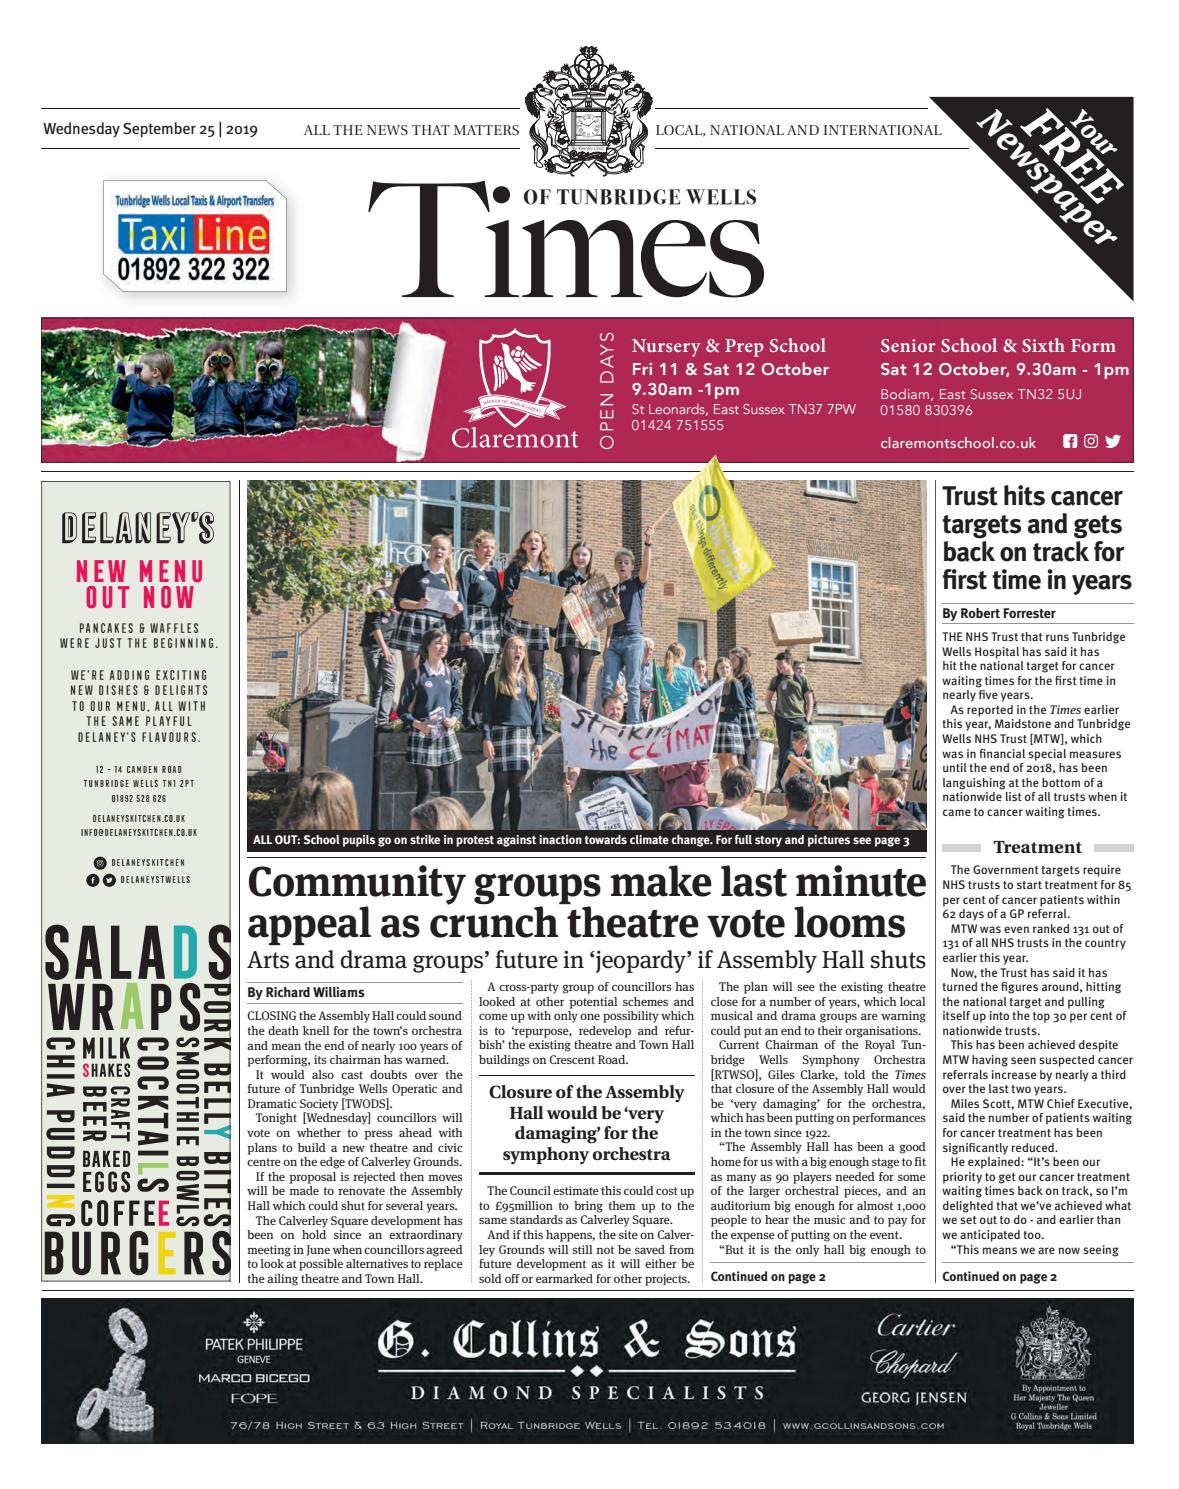 Times Of Tunbridge Wells 25th September 2019 By One Media Issuu